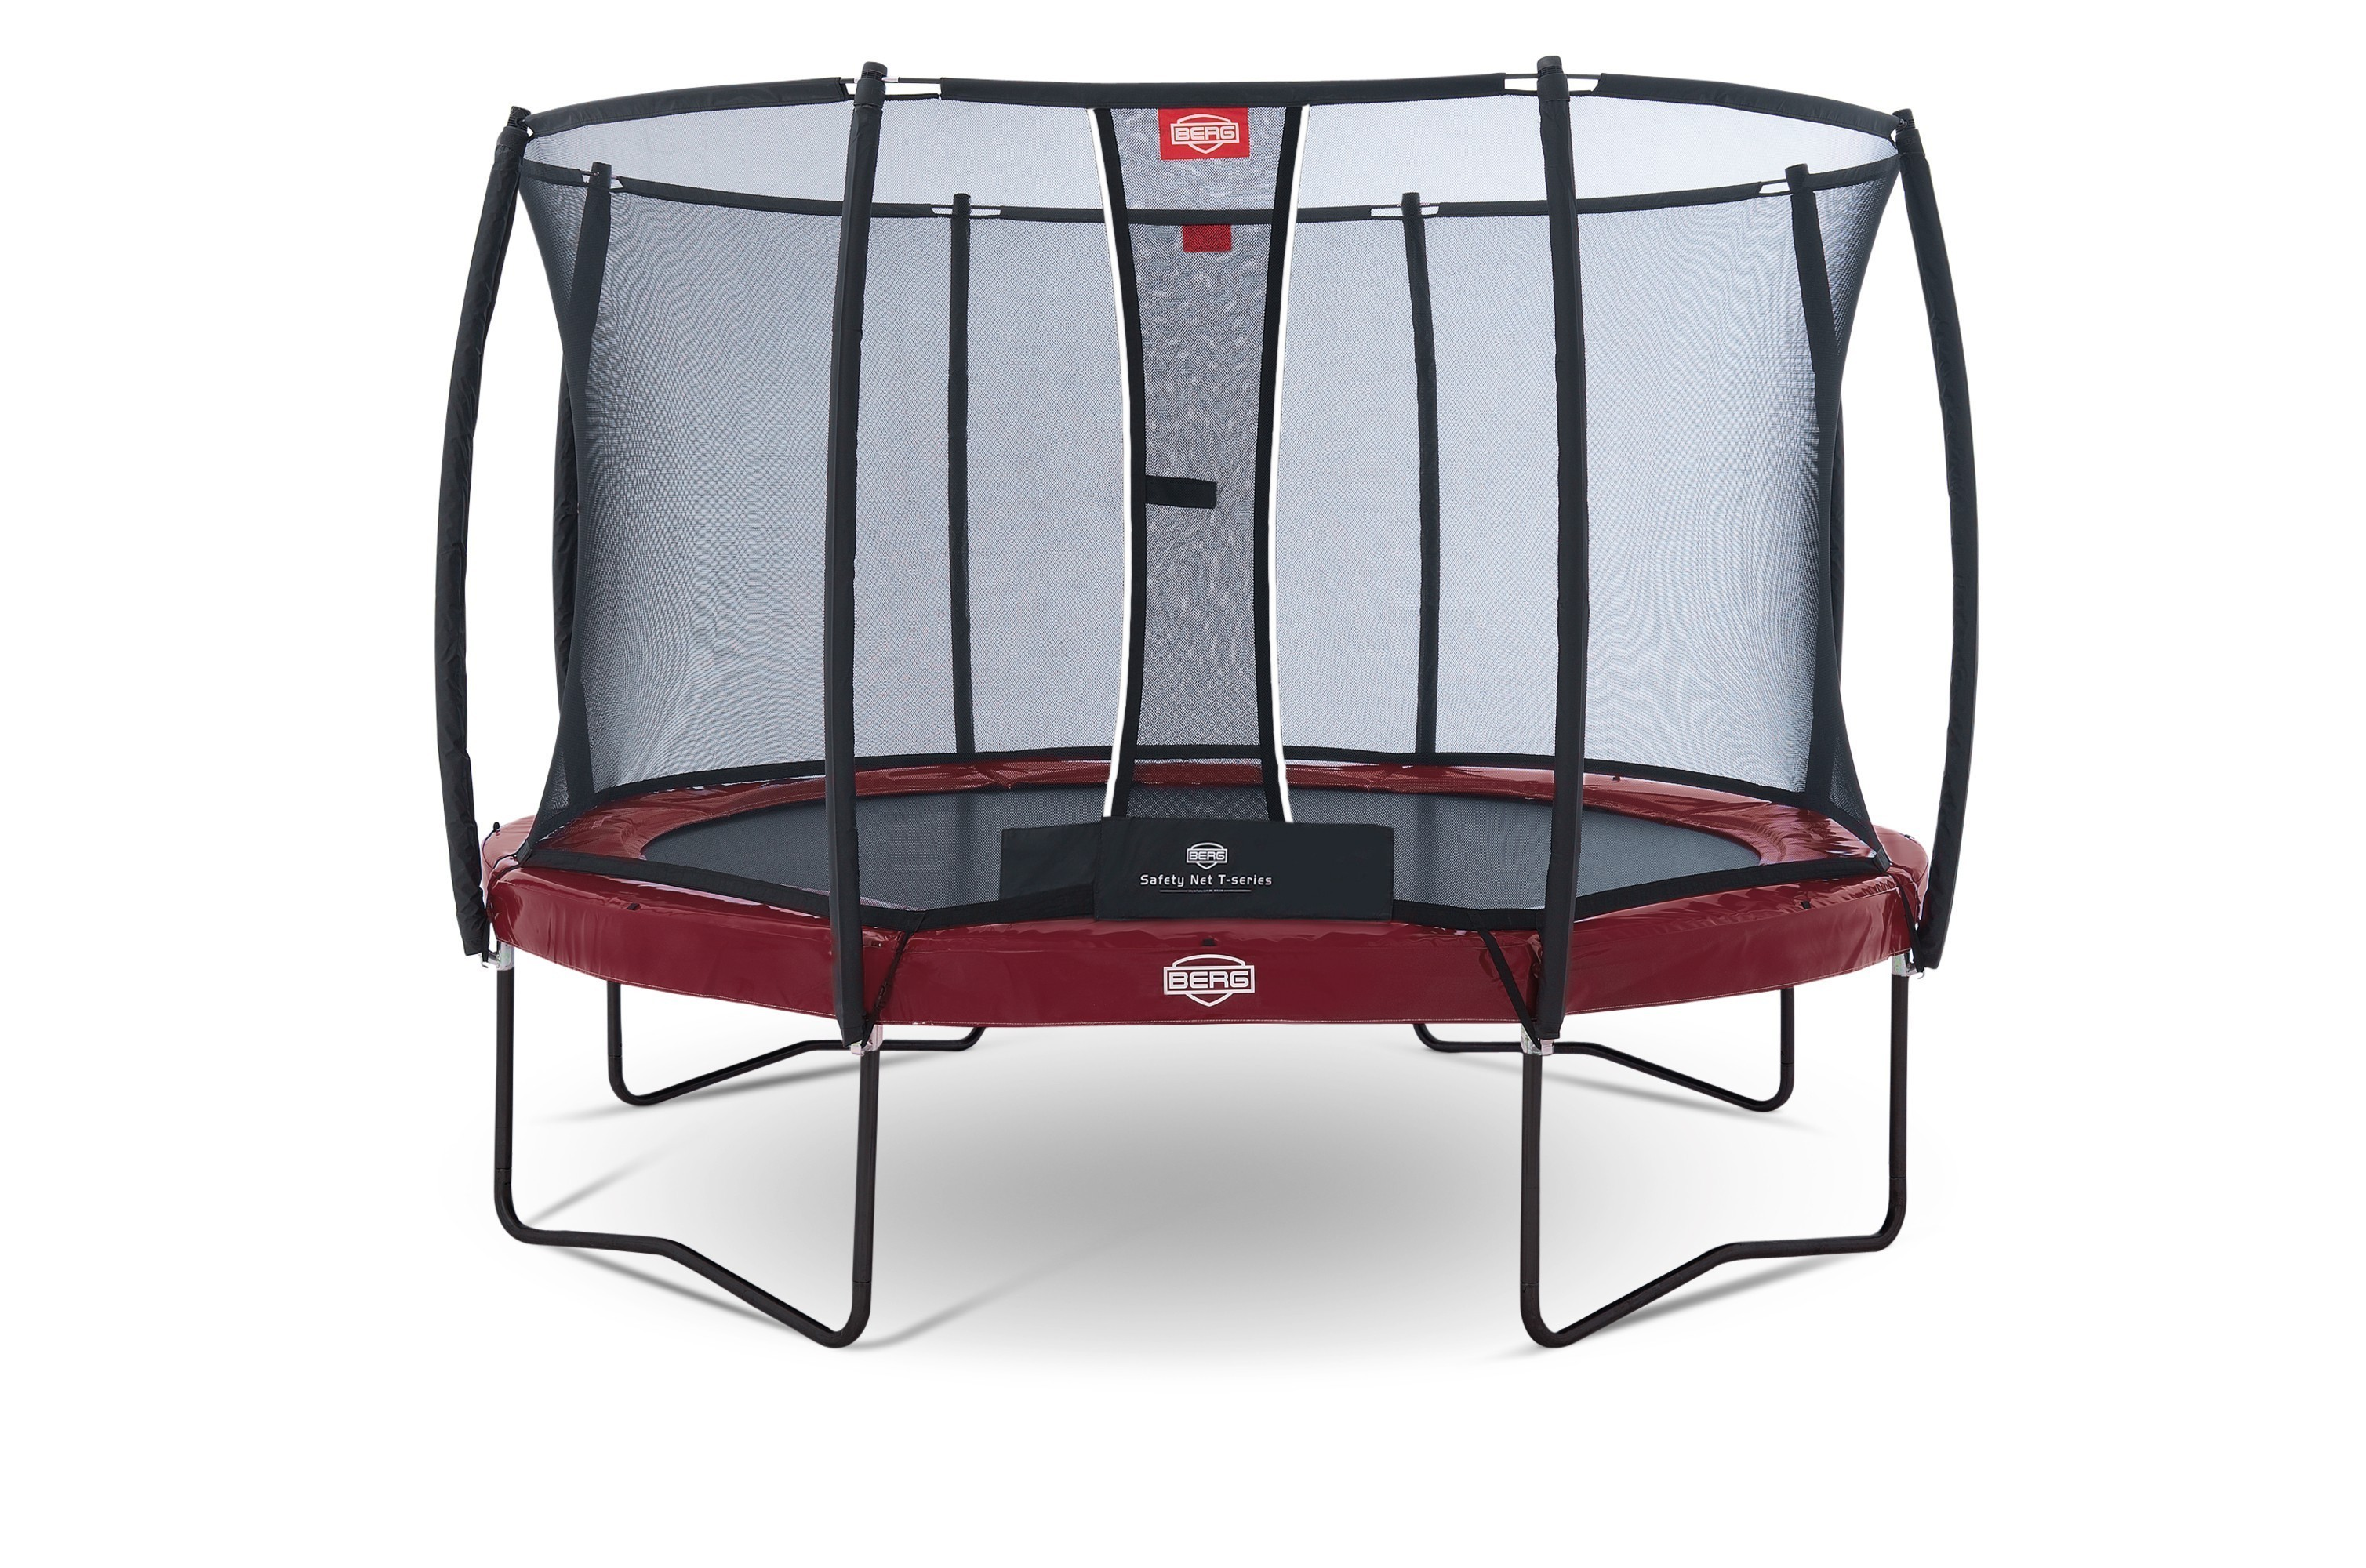 trampolin elite rot mit sicherheitsnetz t series 380cm bei. Black Bedroom Furniture Sets. Home Design Ideas